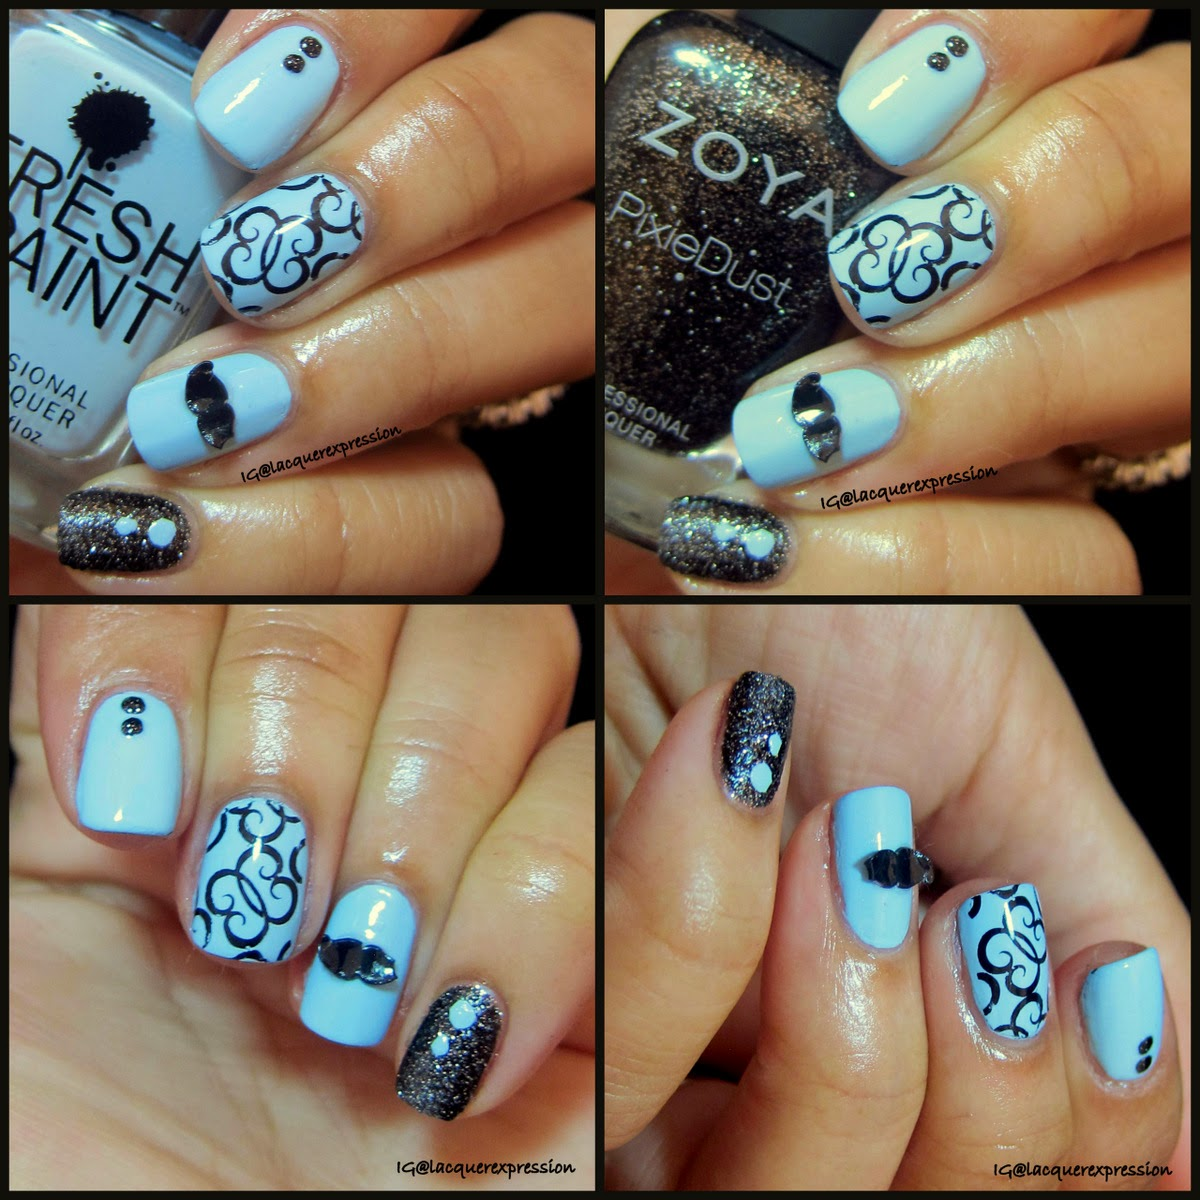 Movember mustache nail art using Bonna Blue by Fresh Paint and Dahlia by Zoya